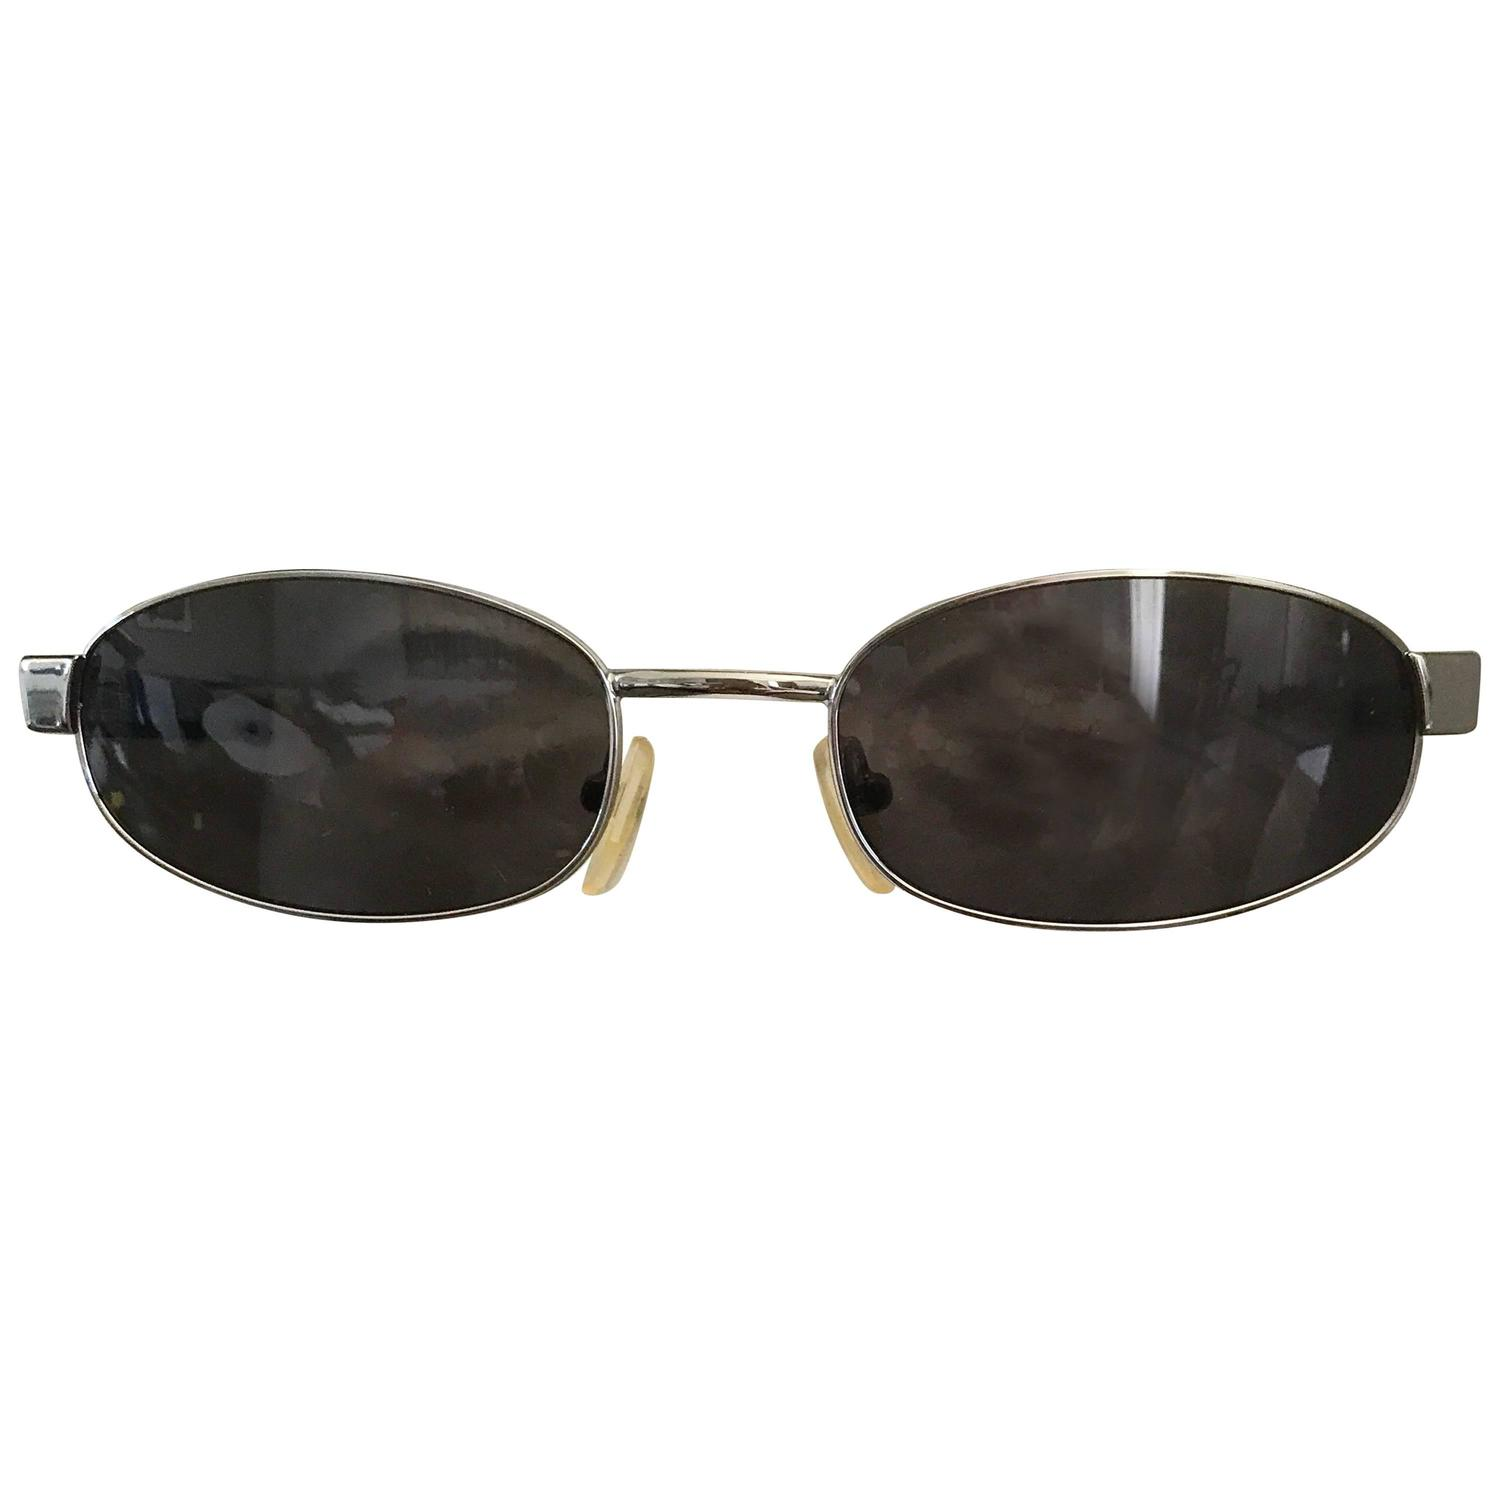 4793ccdb749a Tom Ford for Gucci Unisex 1990s GG 1640 S Black Nickel Vintage Oval  Sunglasses